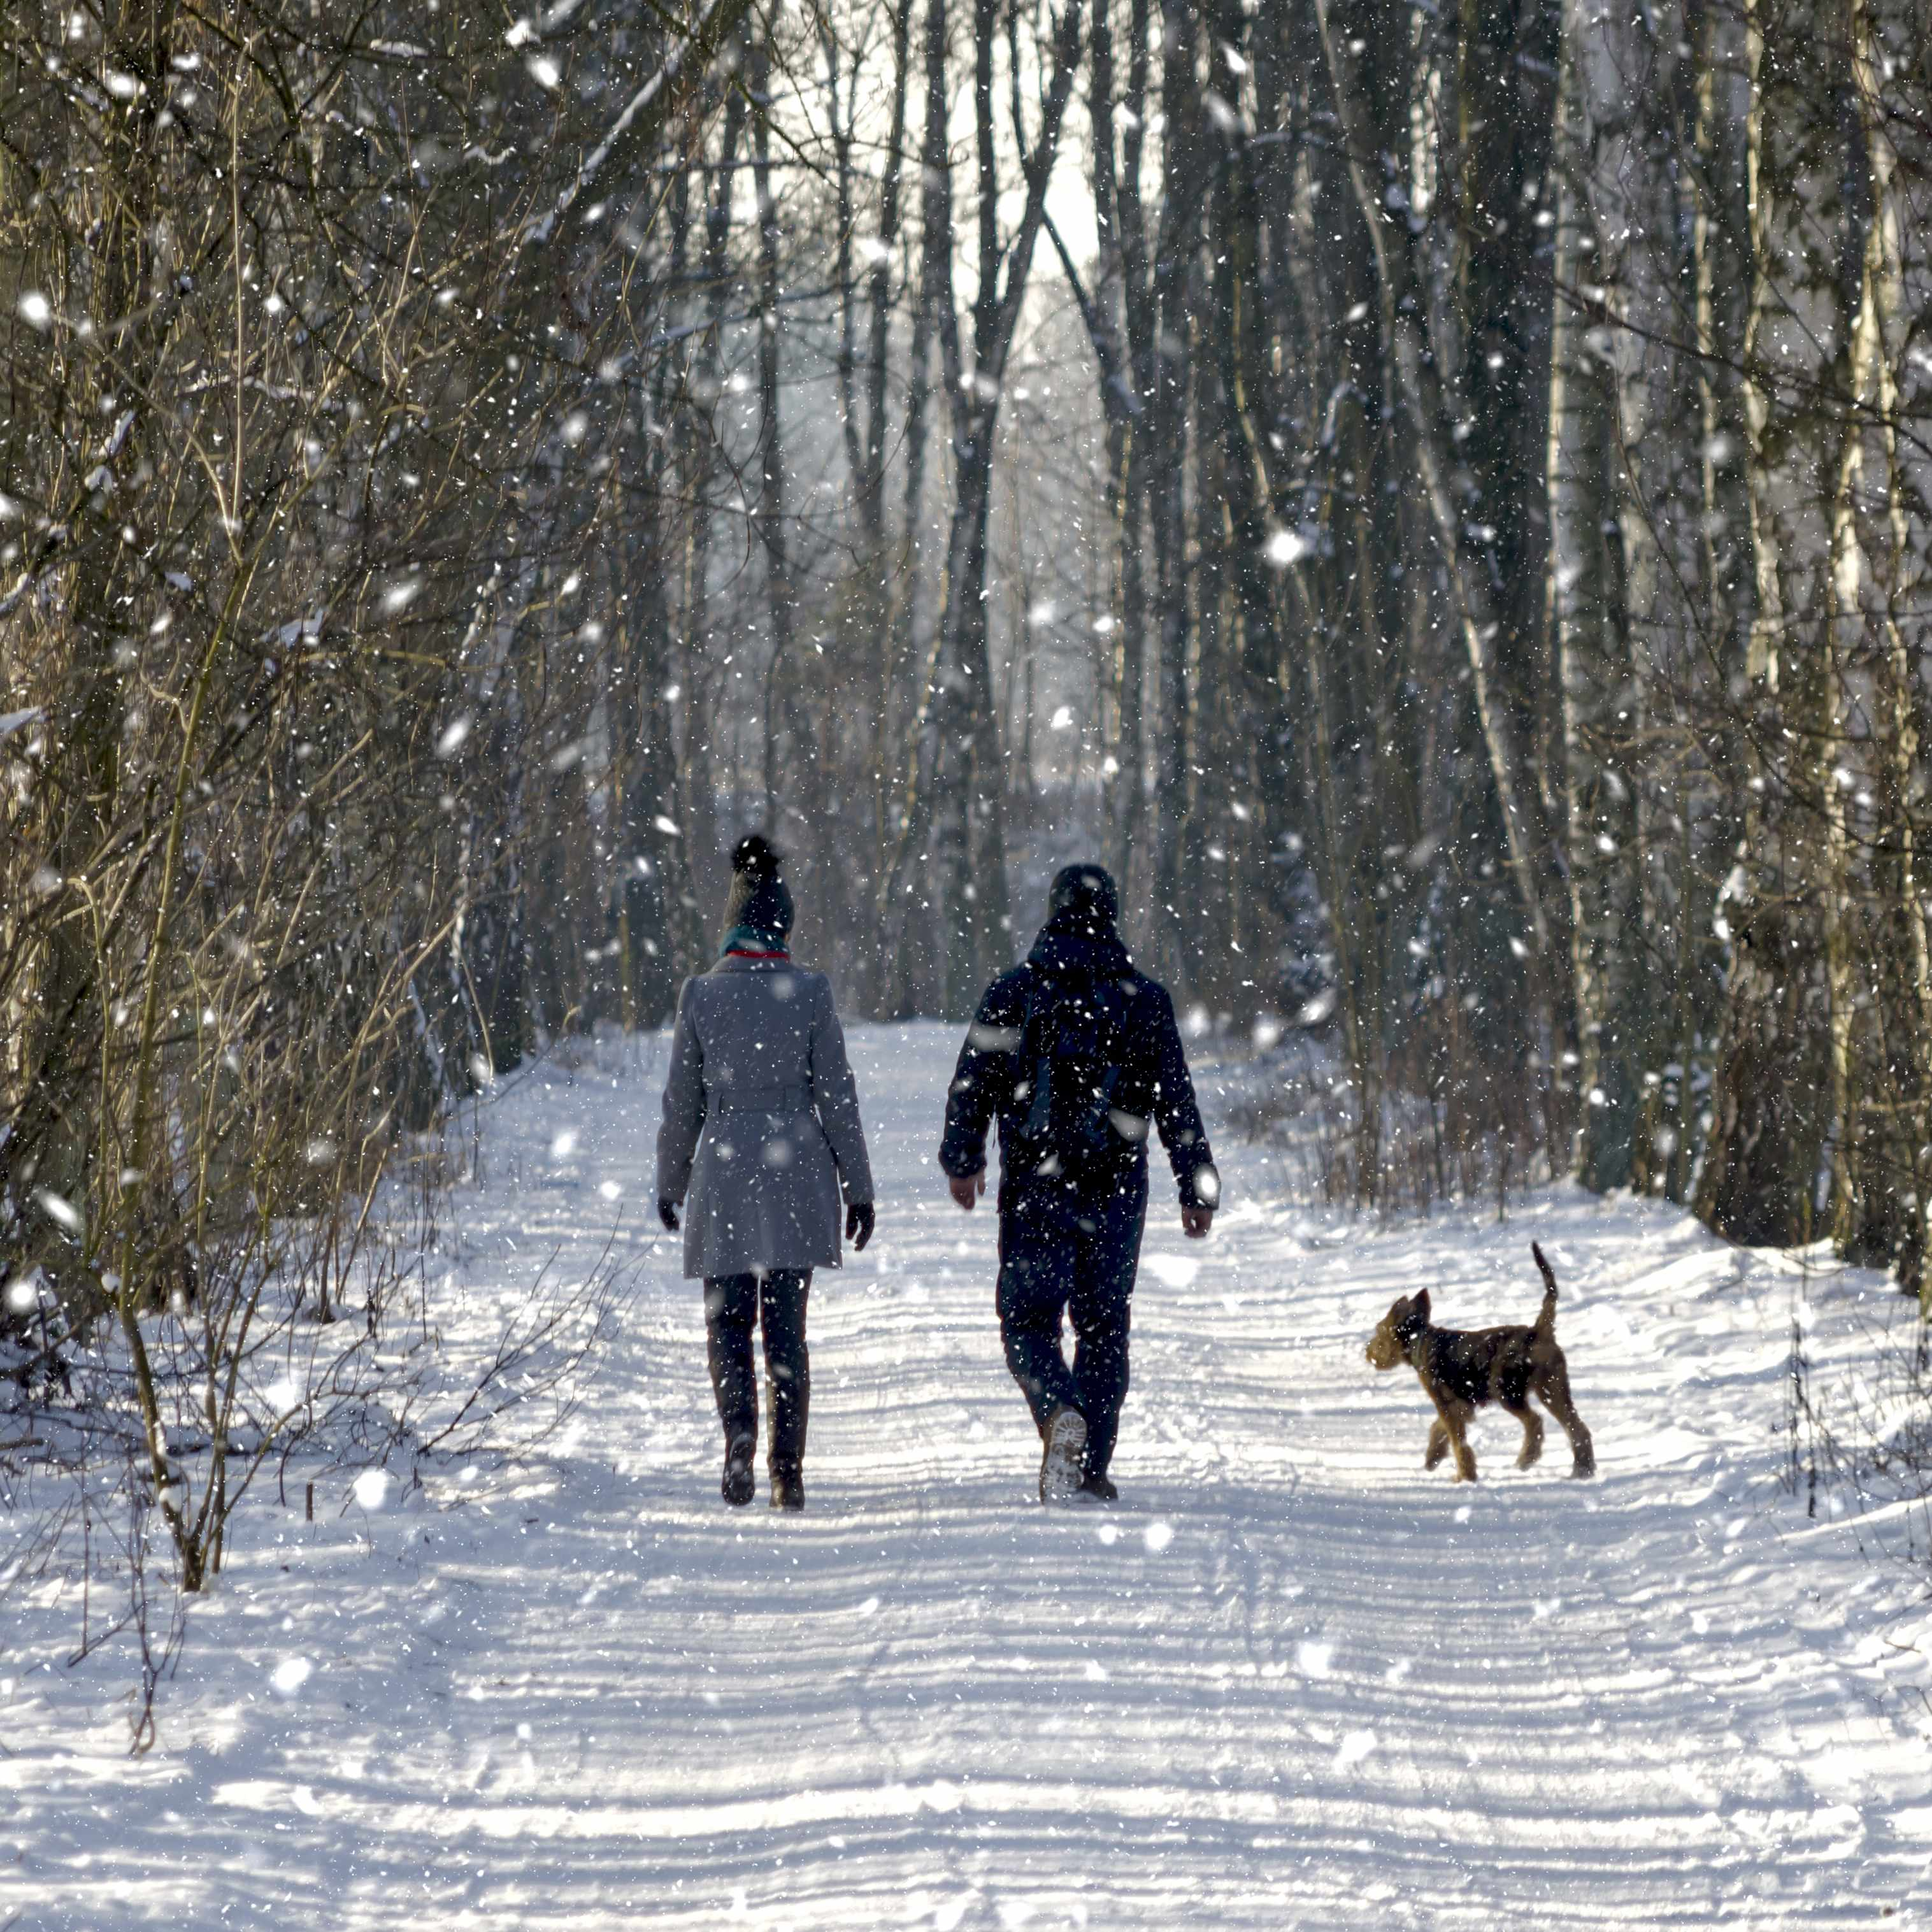 a woman, man and dog walking down a snowy path in the woods